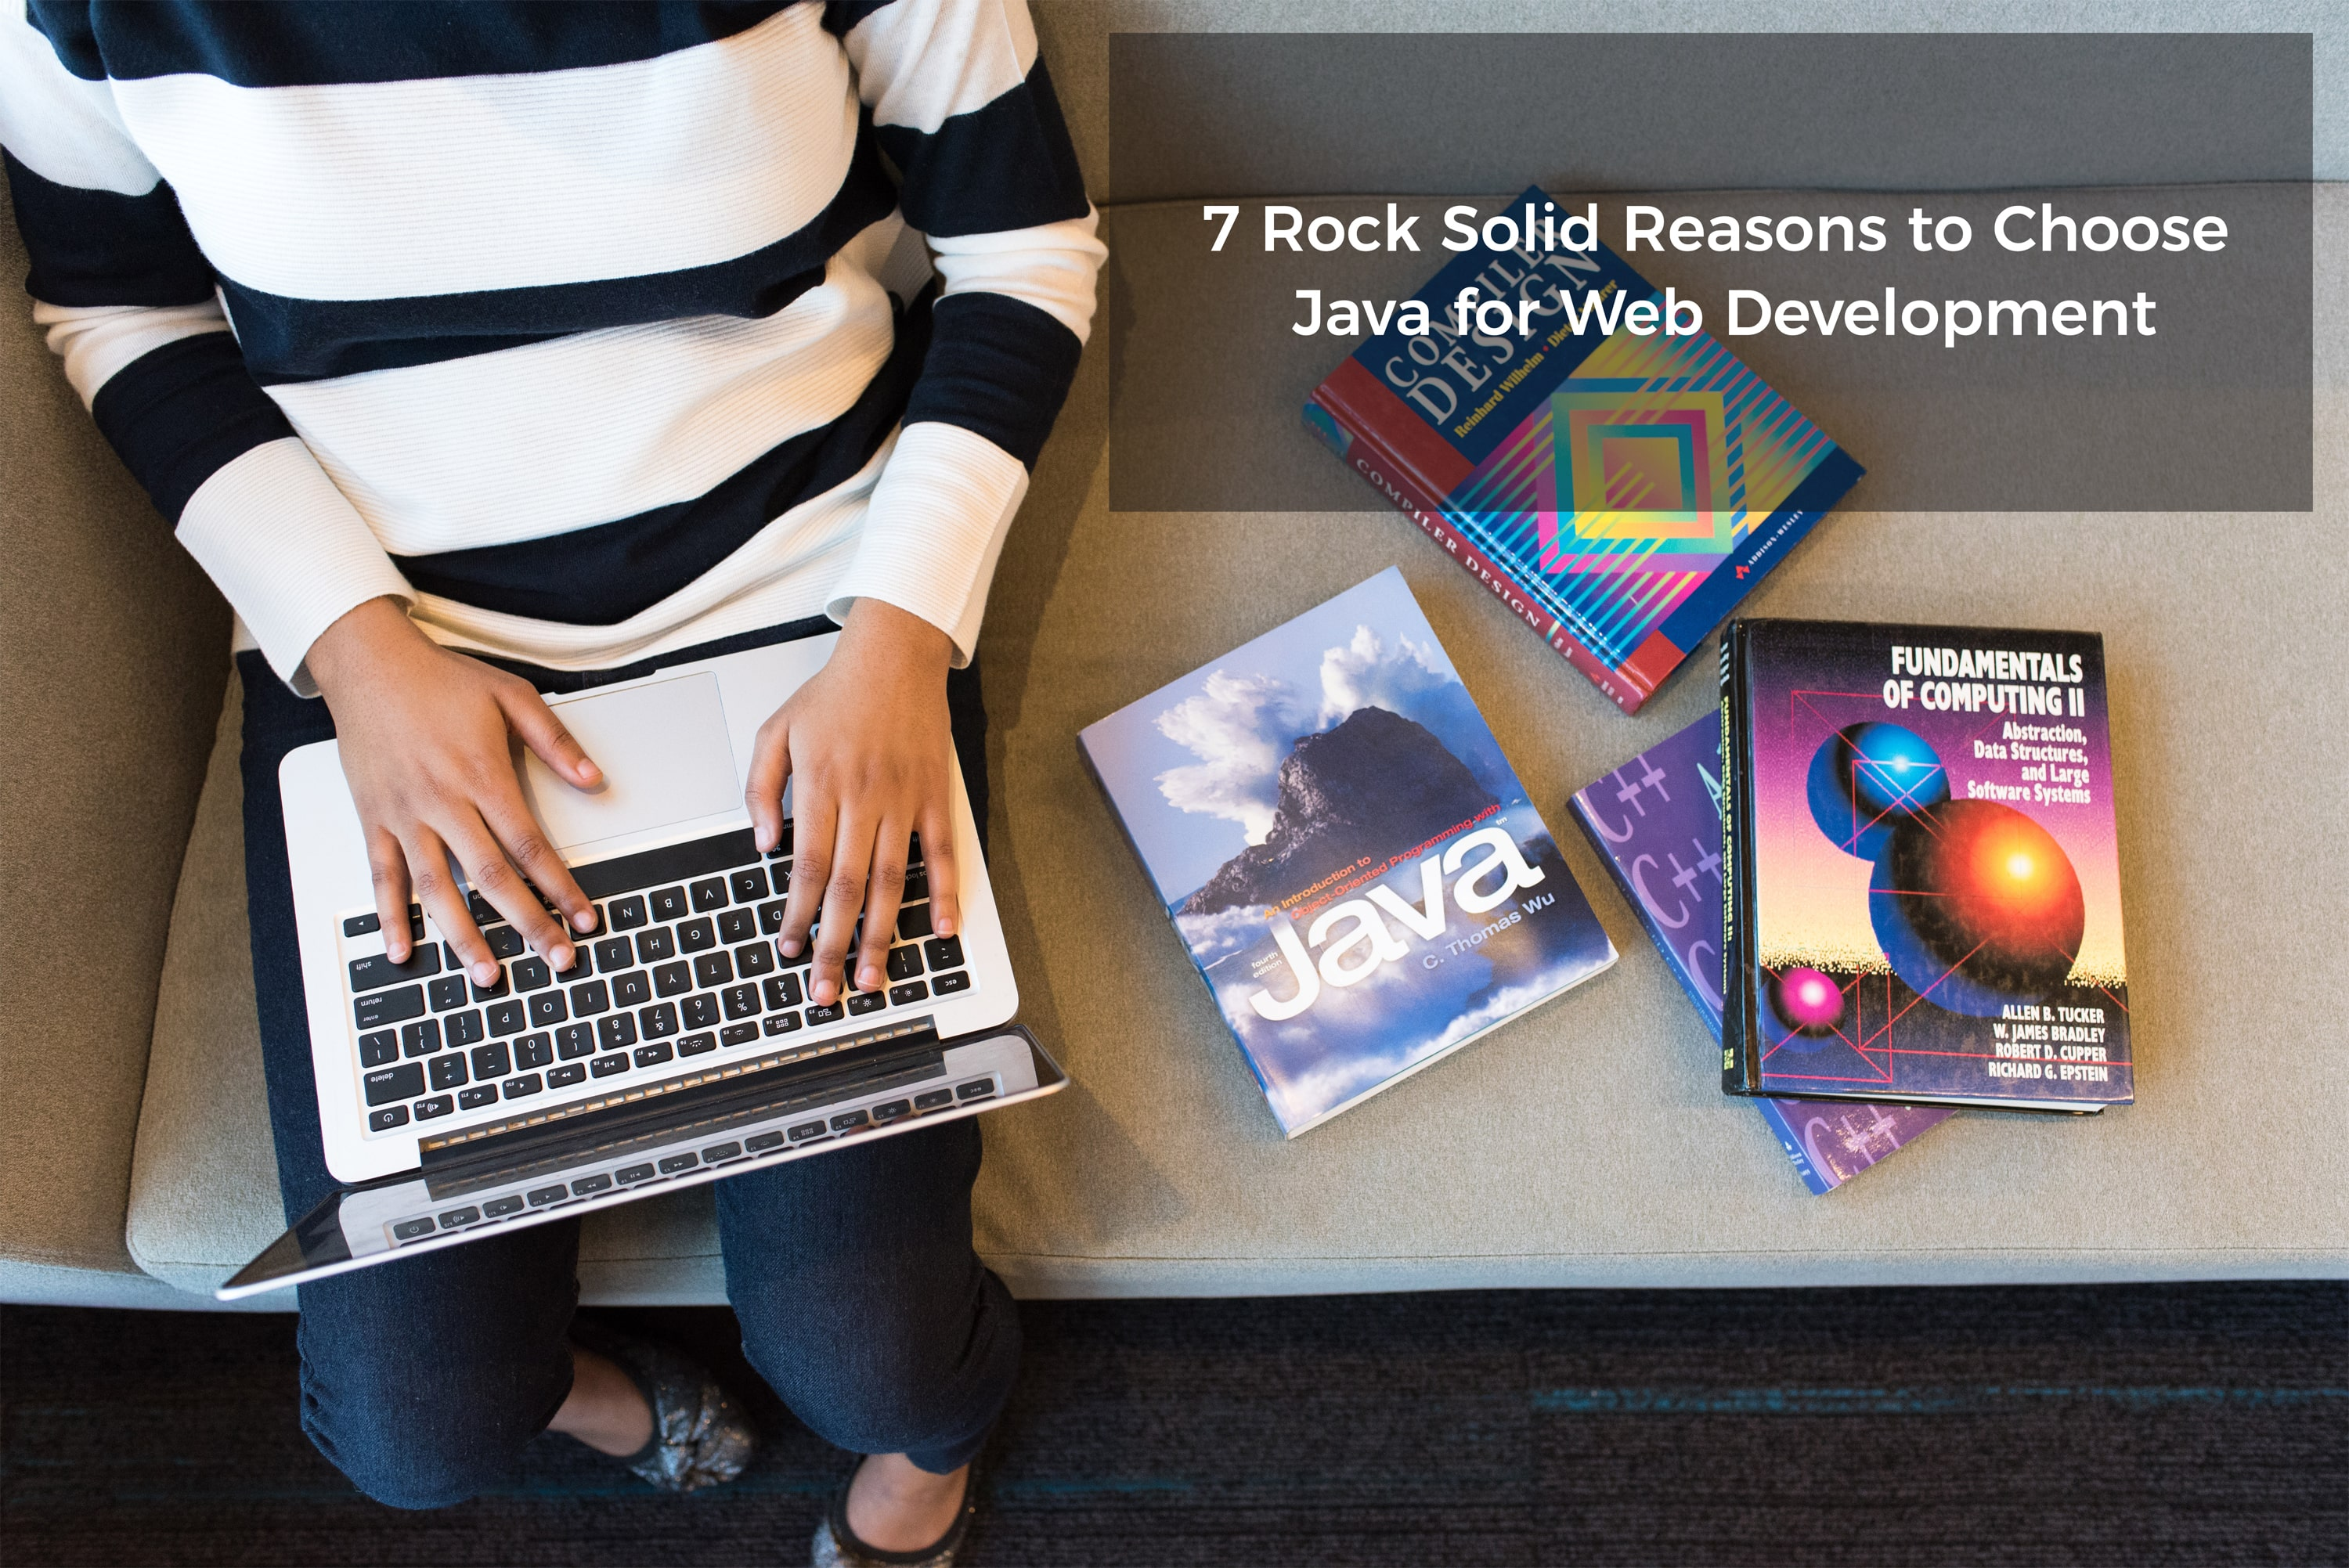 7 Rock Solid Reasons to Choose Java for Web Development